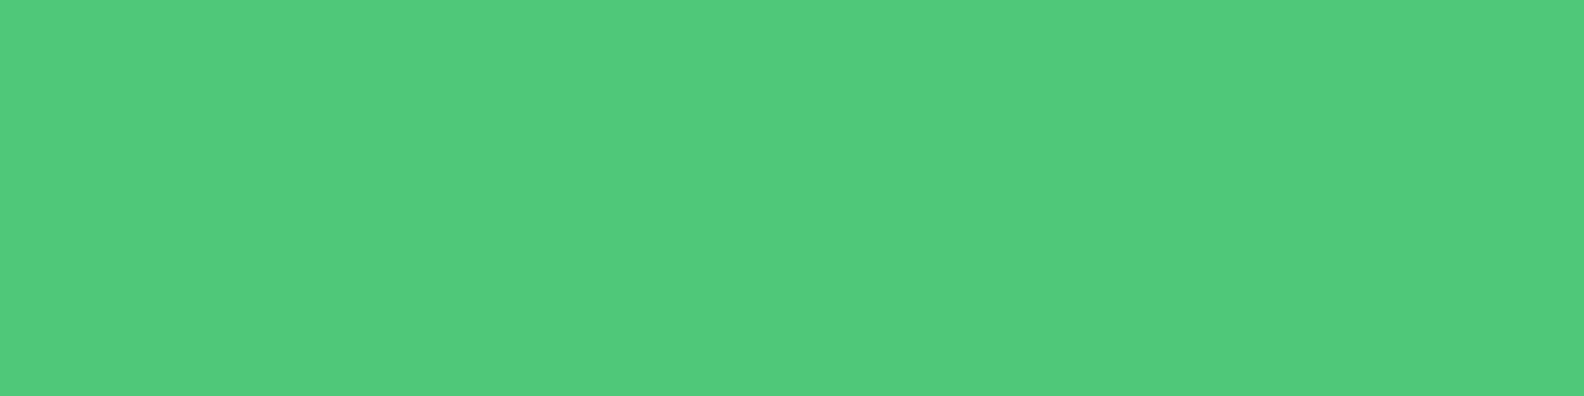 1584x396 Emerald Solid Color Background